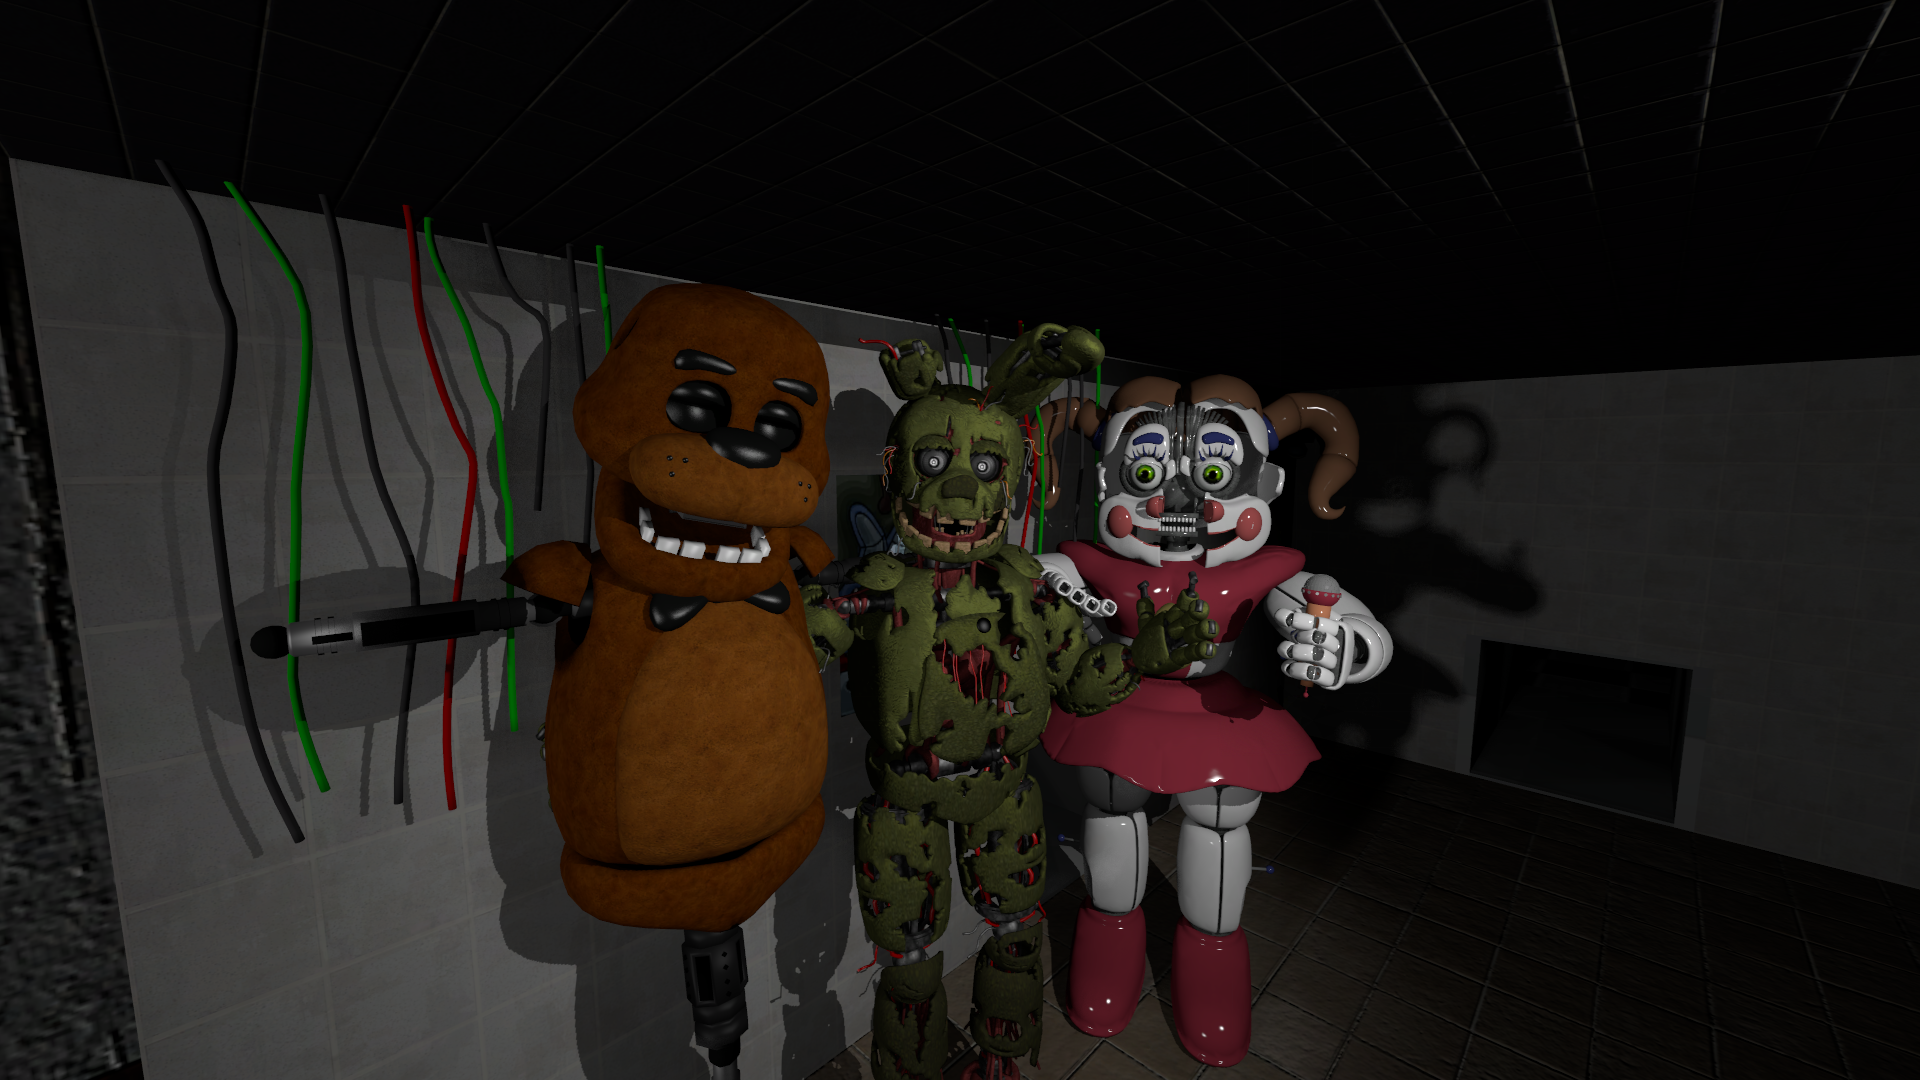 Fnaf 3 Sfm Springtrap Icon Pose Full Body Hd On Deviantart